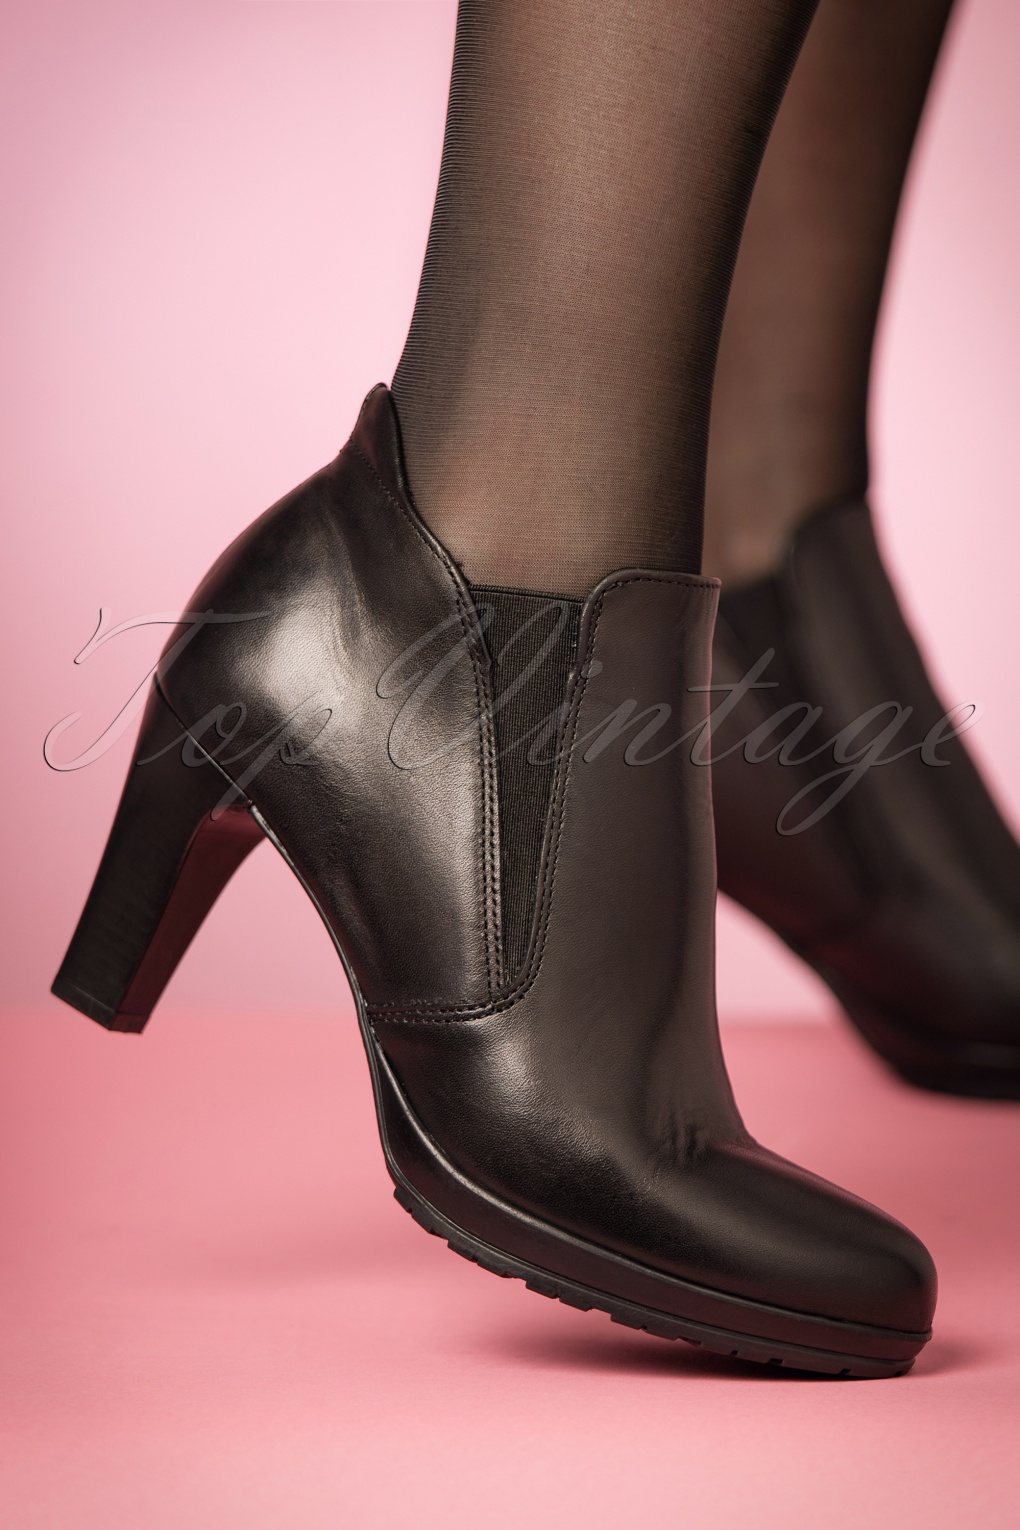 Retro Boots, Granny Boots, 70s Boots 50s Donna Leather Ankle Booties in Black £66.62 AT vintagedancer.com